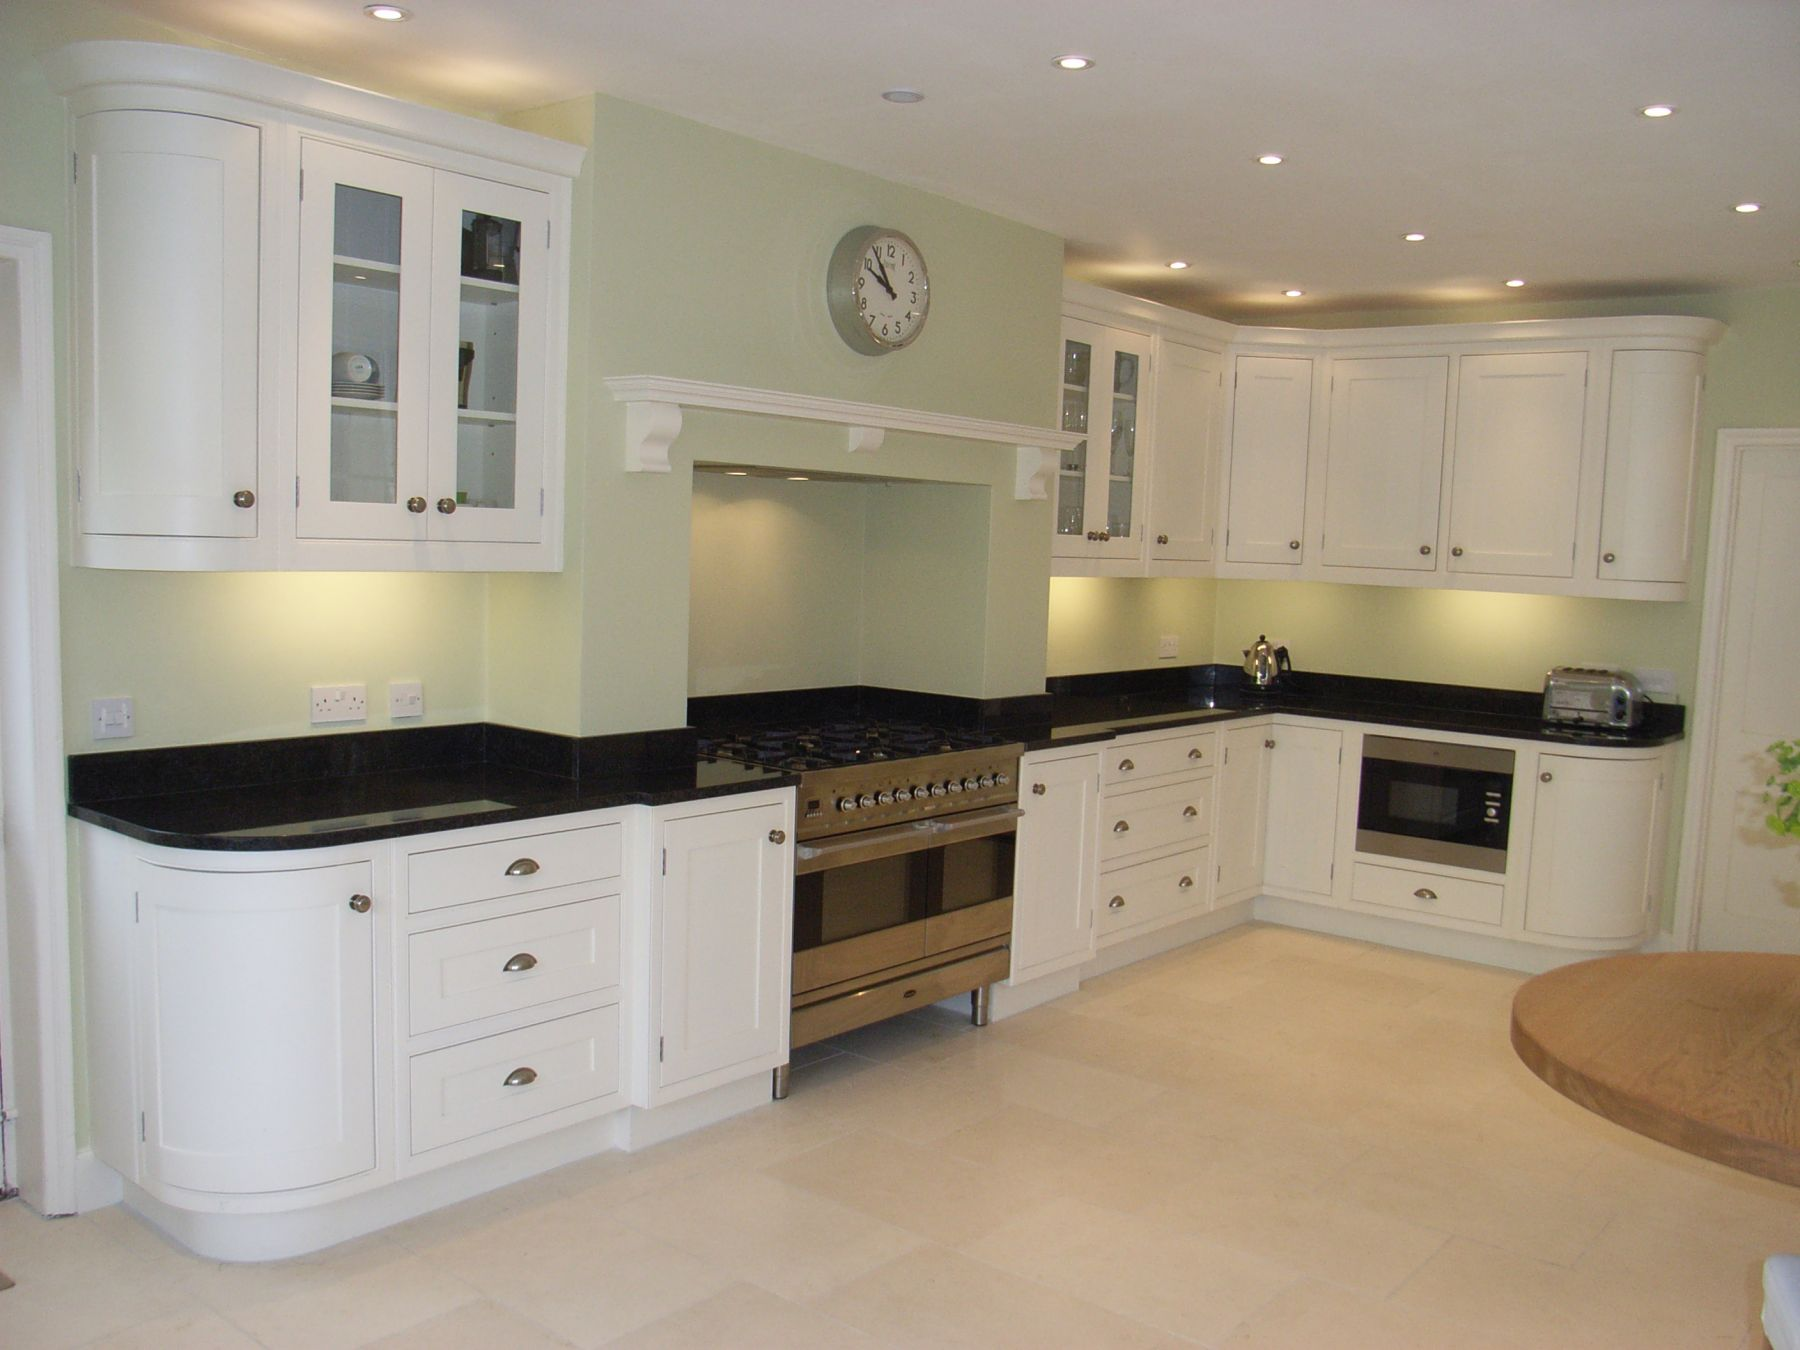 Contemporary kitchen diner bath style within for Style kitchen and bath